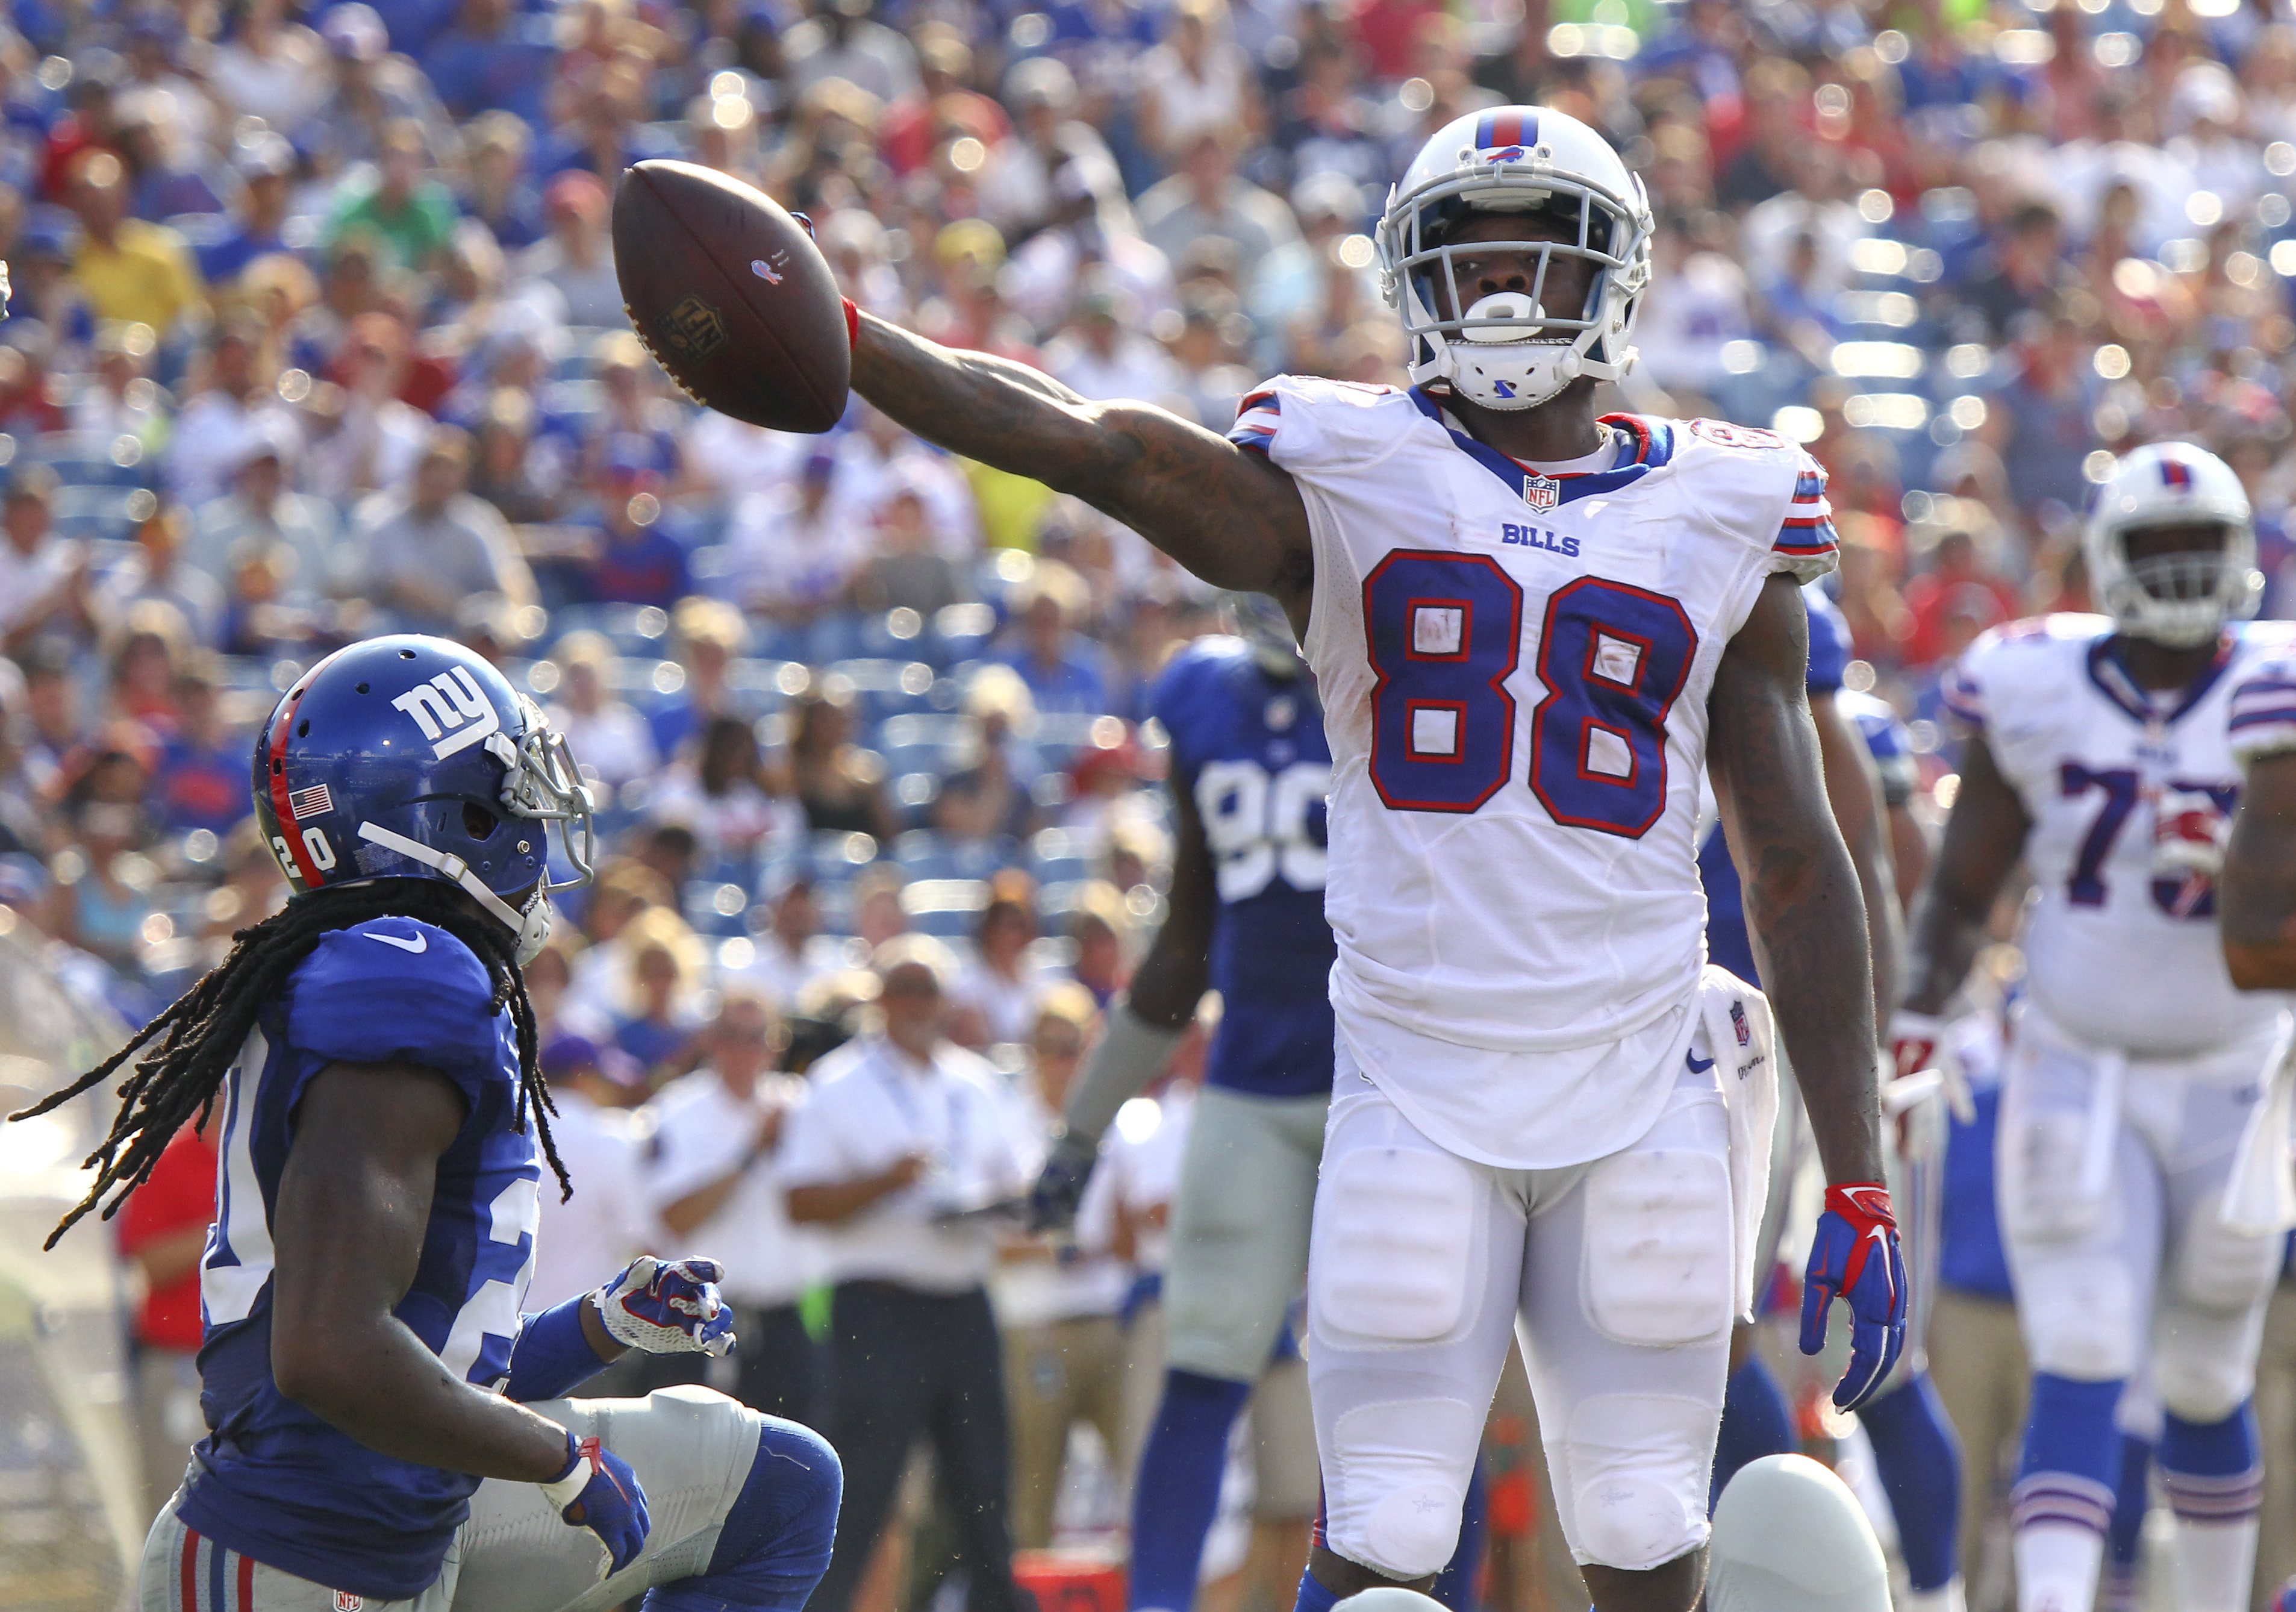 Buffalo Bills wide receiver Marquise Goodwin (88) reacts after gaining a first down against the New York Giants inside their five yard line during the second quarter of a preseason NFL football game, Saturday, Aug. 20, 2016, in Buffalo, N.Y. (AP Photo/Jef